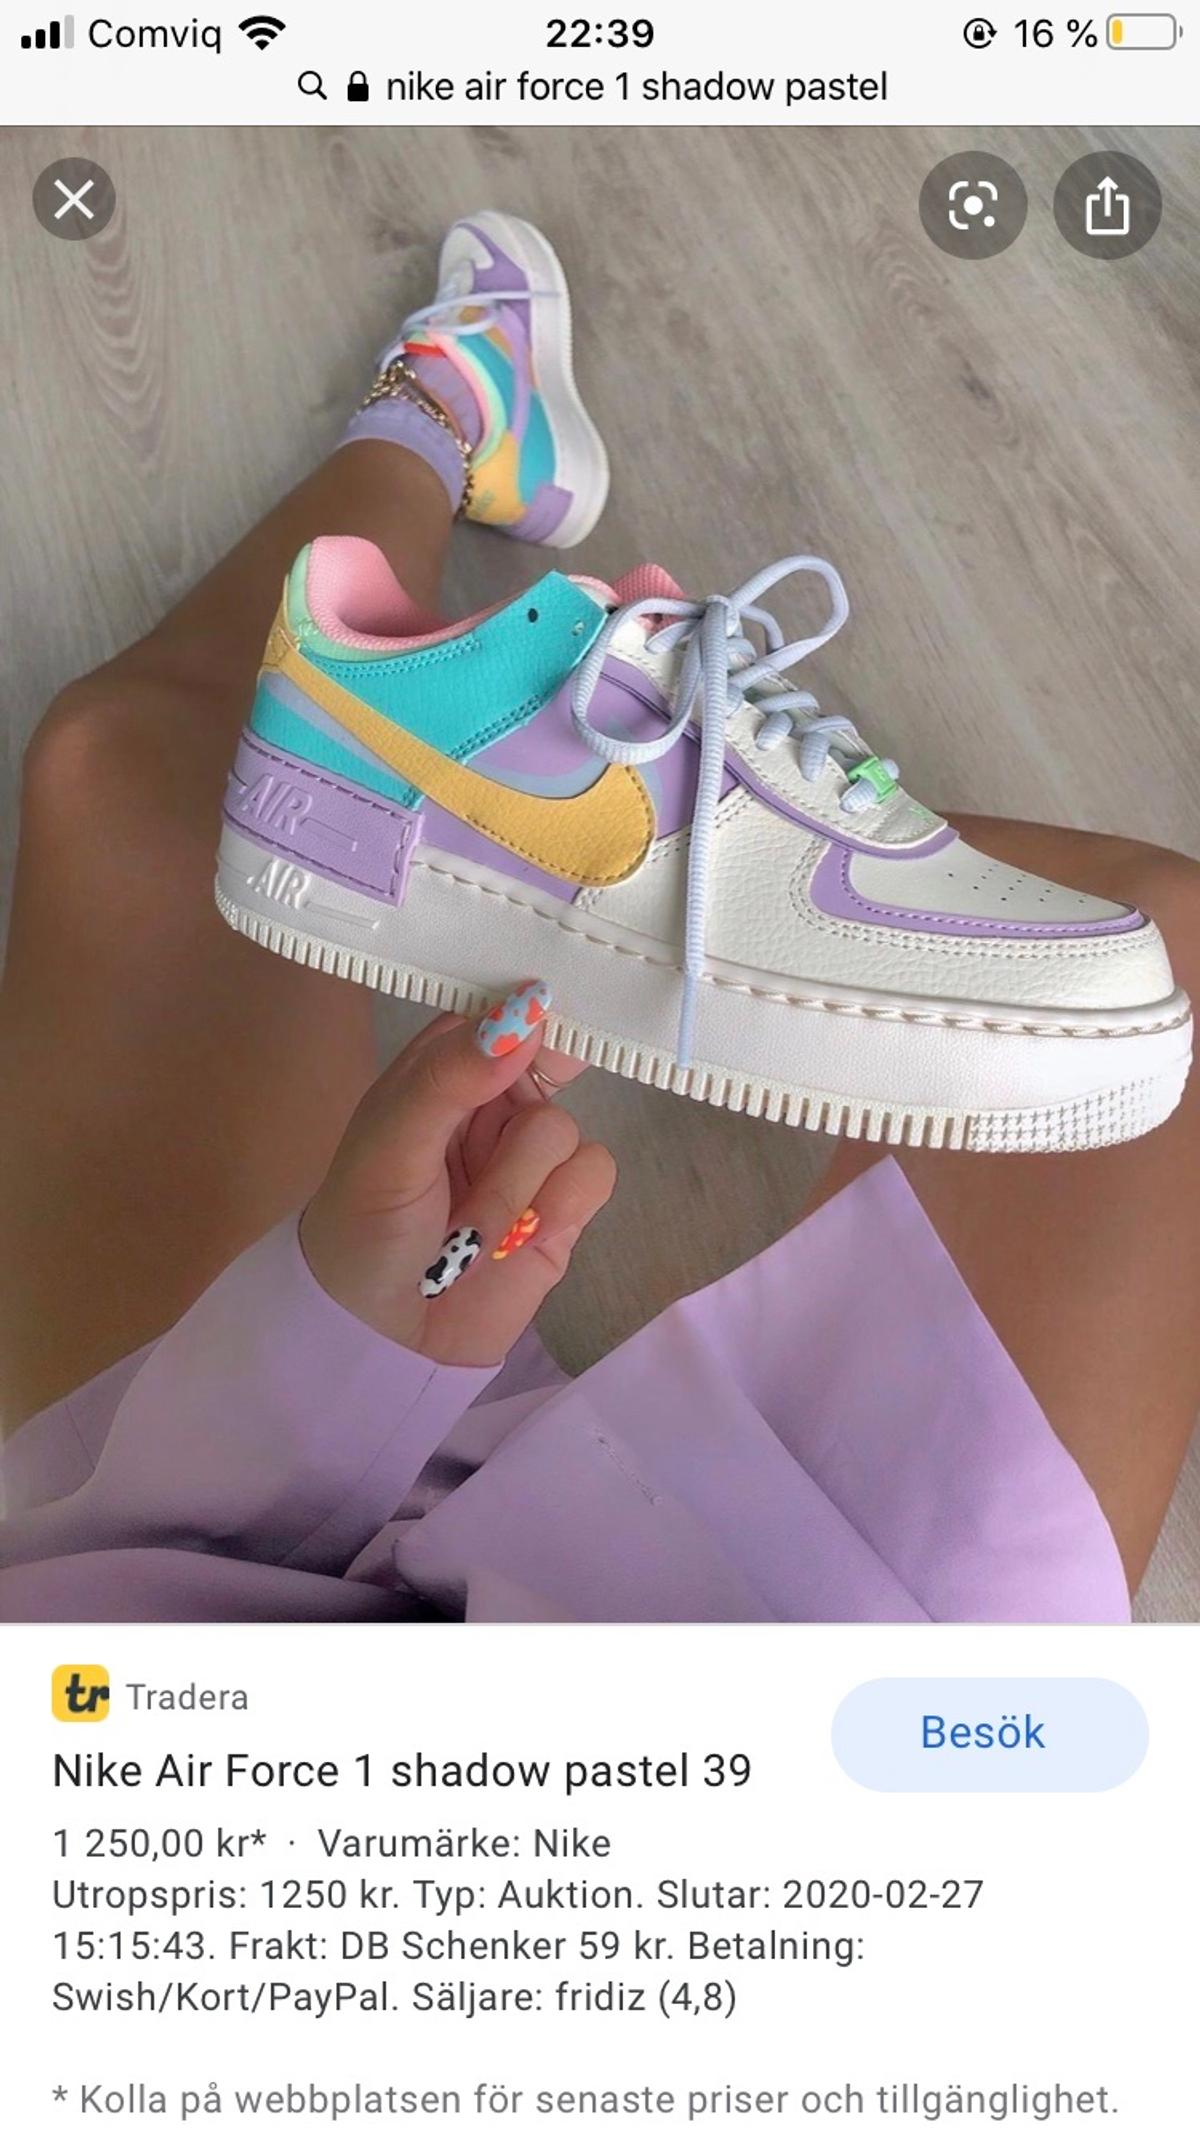 Nike Air Force 1 Shadow Pastel In 14553 Botkyrka Kommun For Sek 1 00 For Sale Shpock Playing with the proportions of its signature 'air force 1' sneakers, nike doubles up on the details of this 'shadow' version with a layered 'swoosh' and thicker sole. nike air force 1 shadow pastel